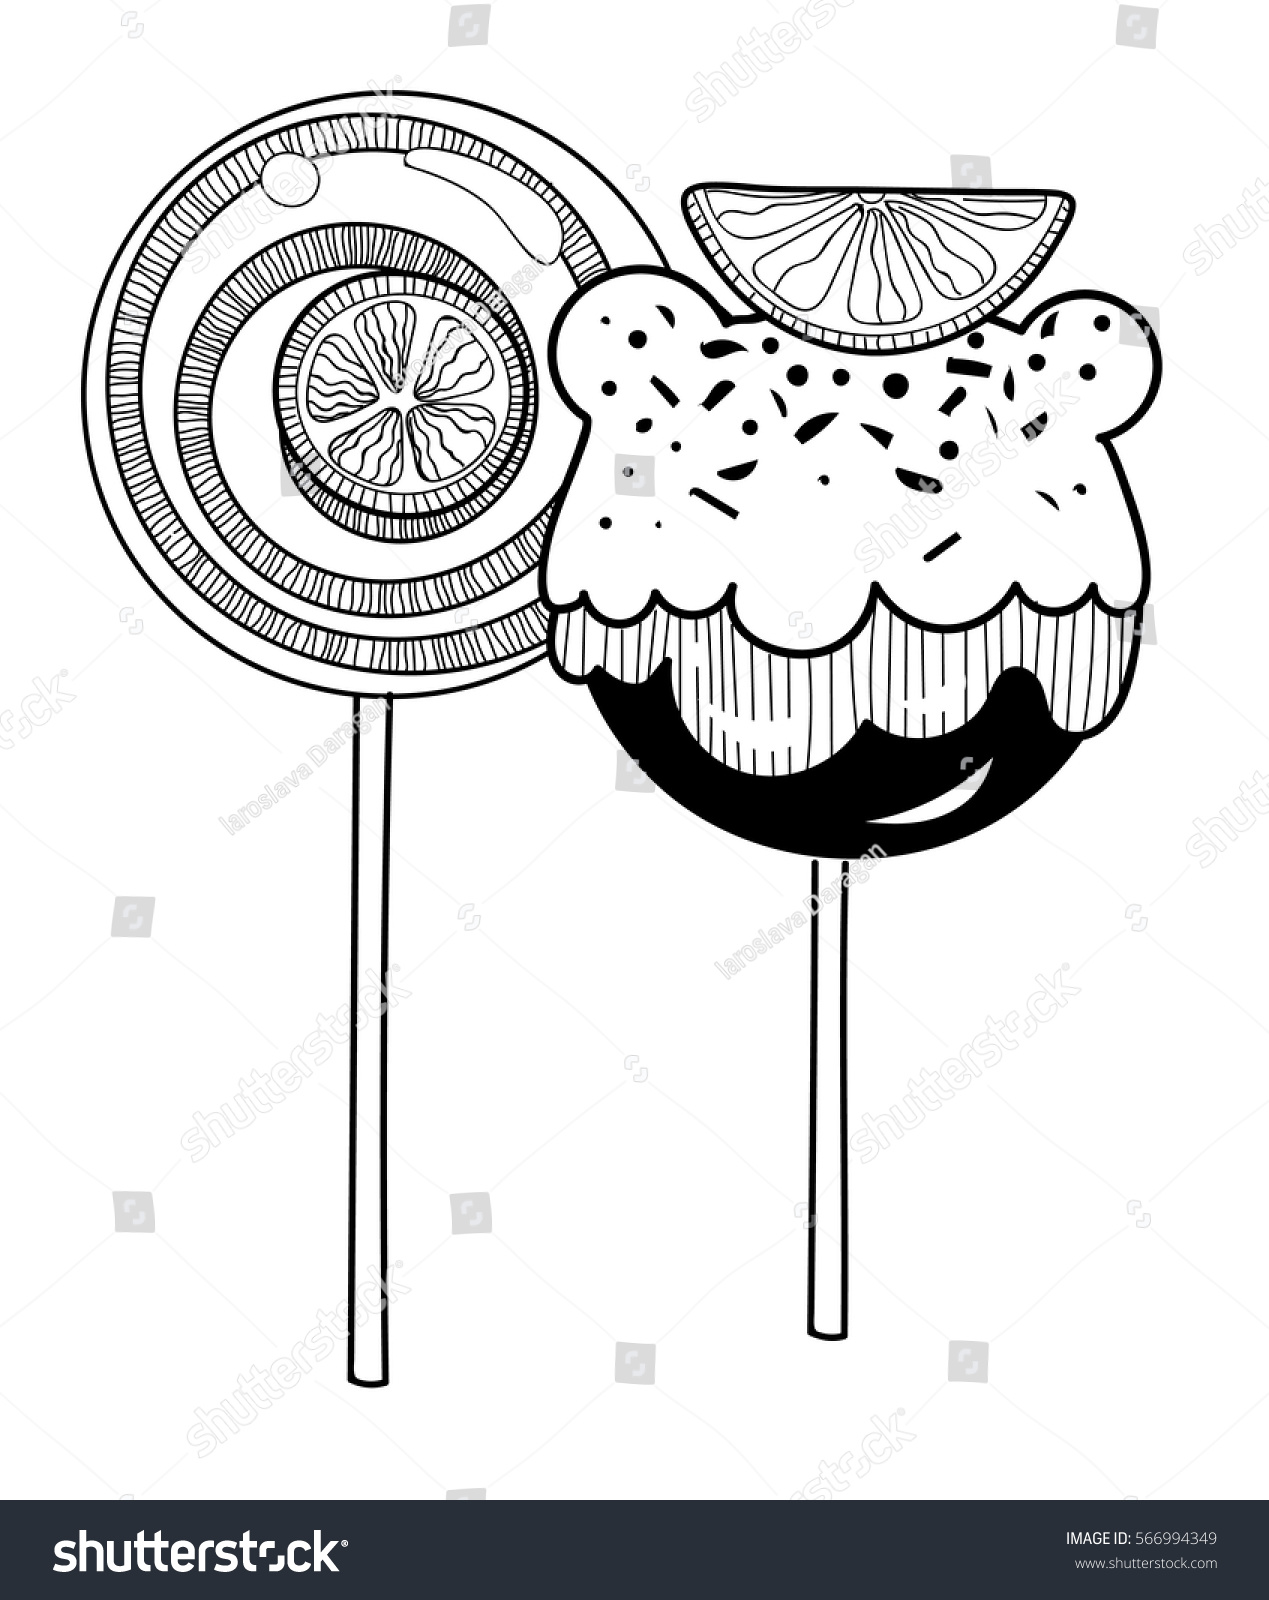 Vector Black White Candies Lollipop Stock Vector 566994349 ... for Clipart Lollipop Black And White  61obs